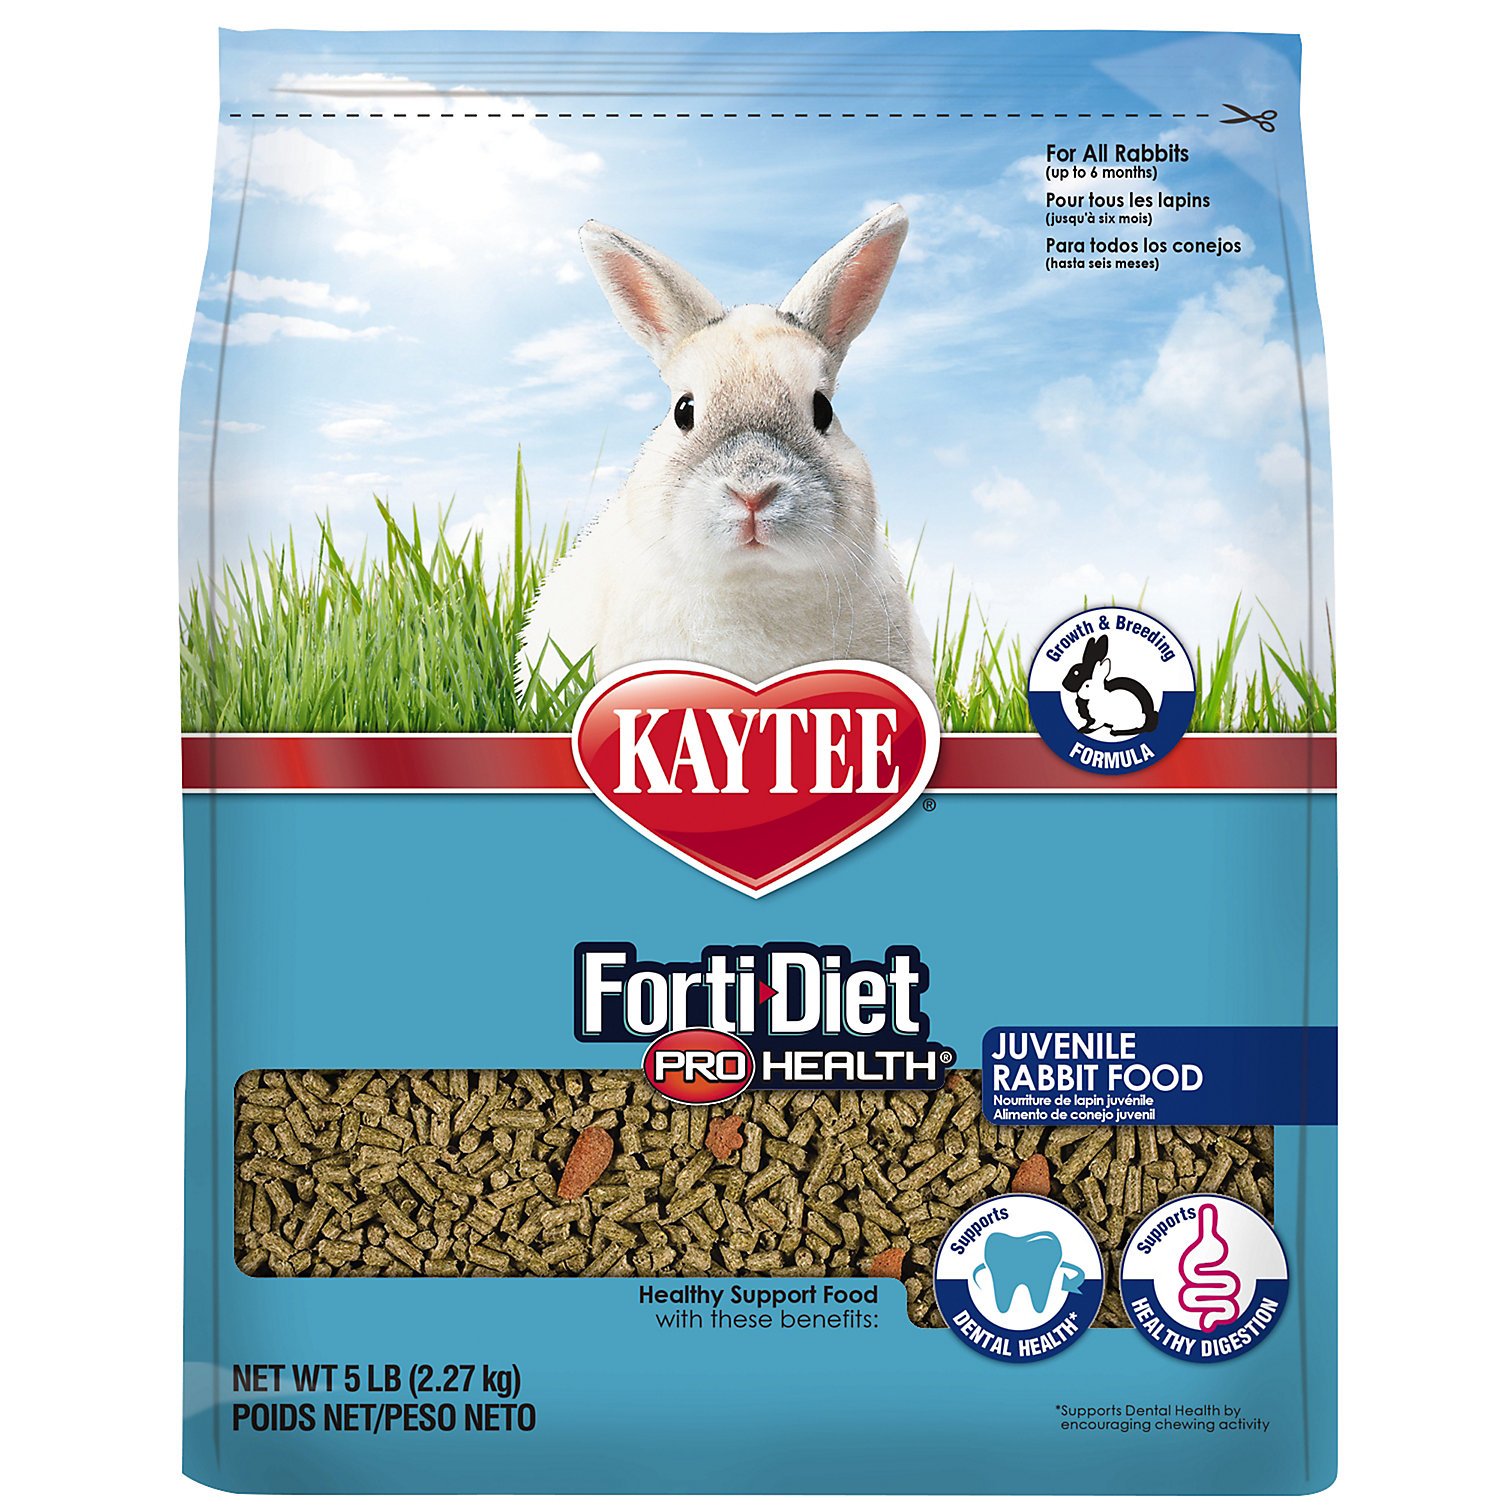 Kaytee Forti Diet Pro Health Food For Juvenile Rabbits 5 Lbs.